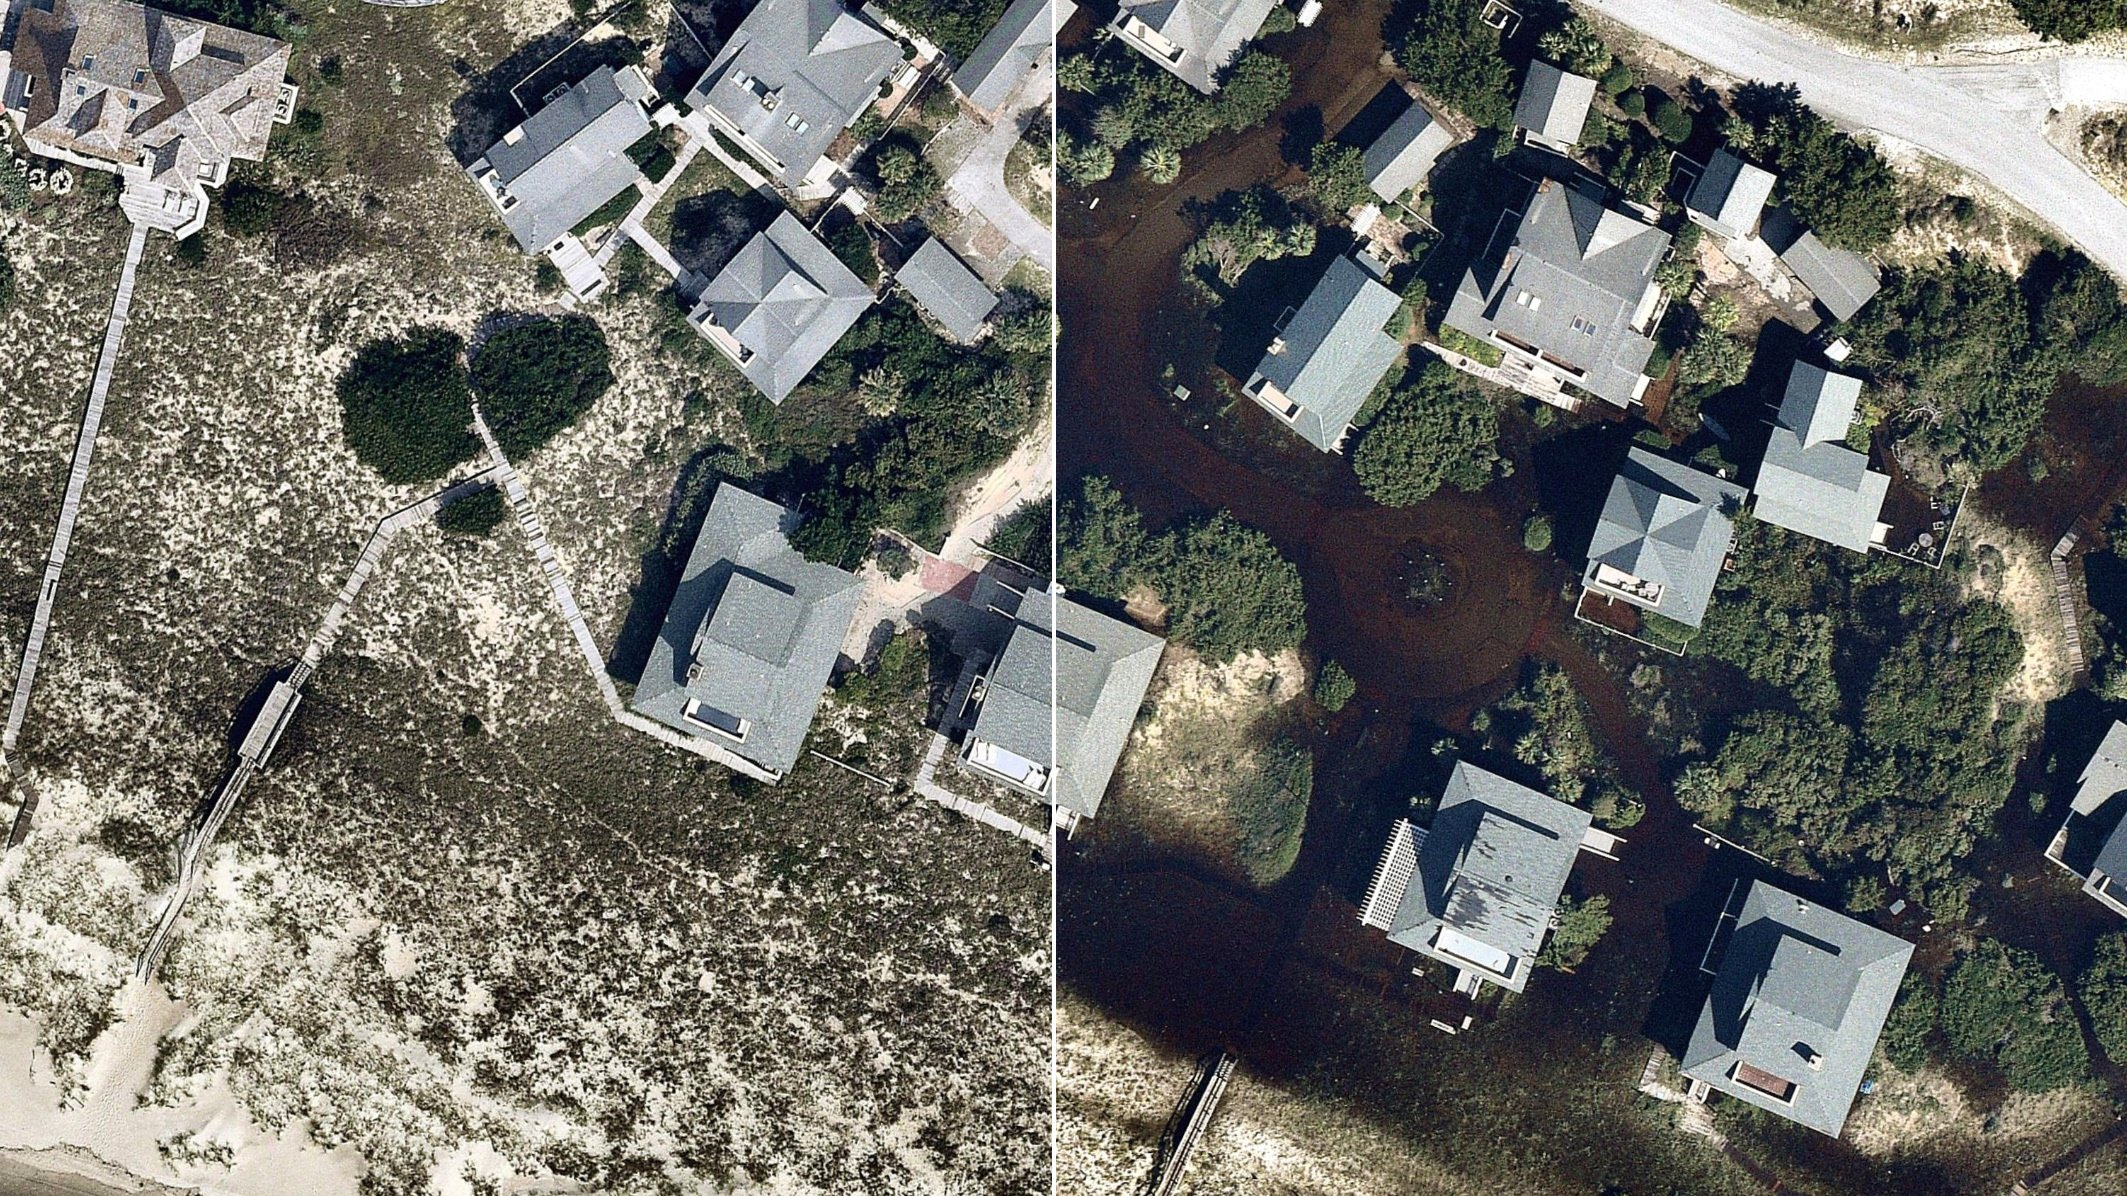 Aerial view of a neighborhood split into before and after disaster